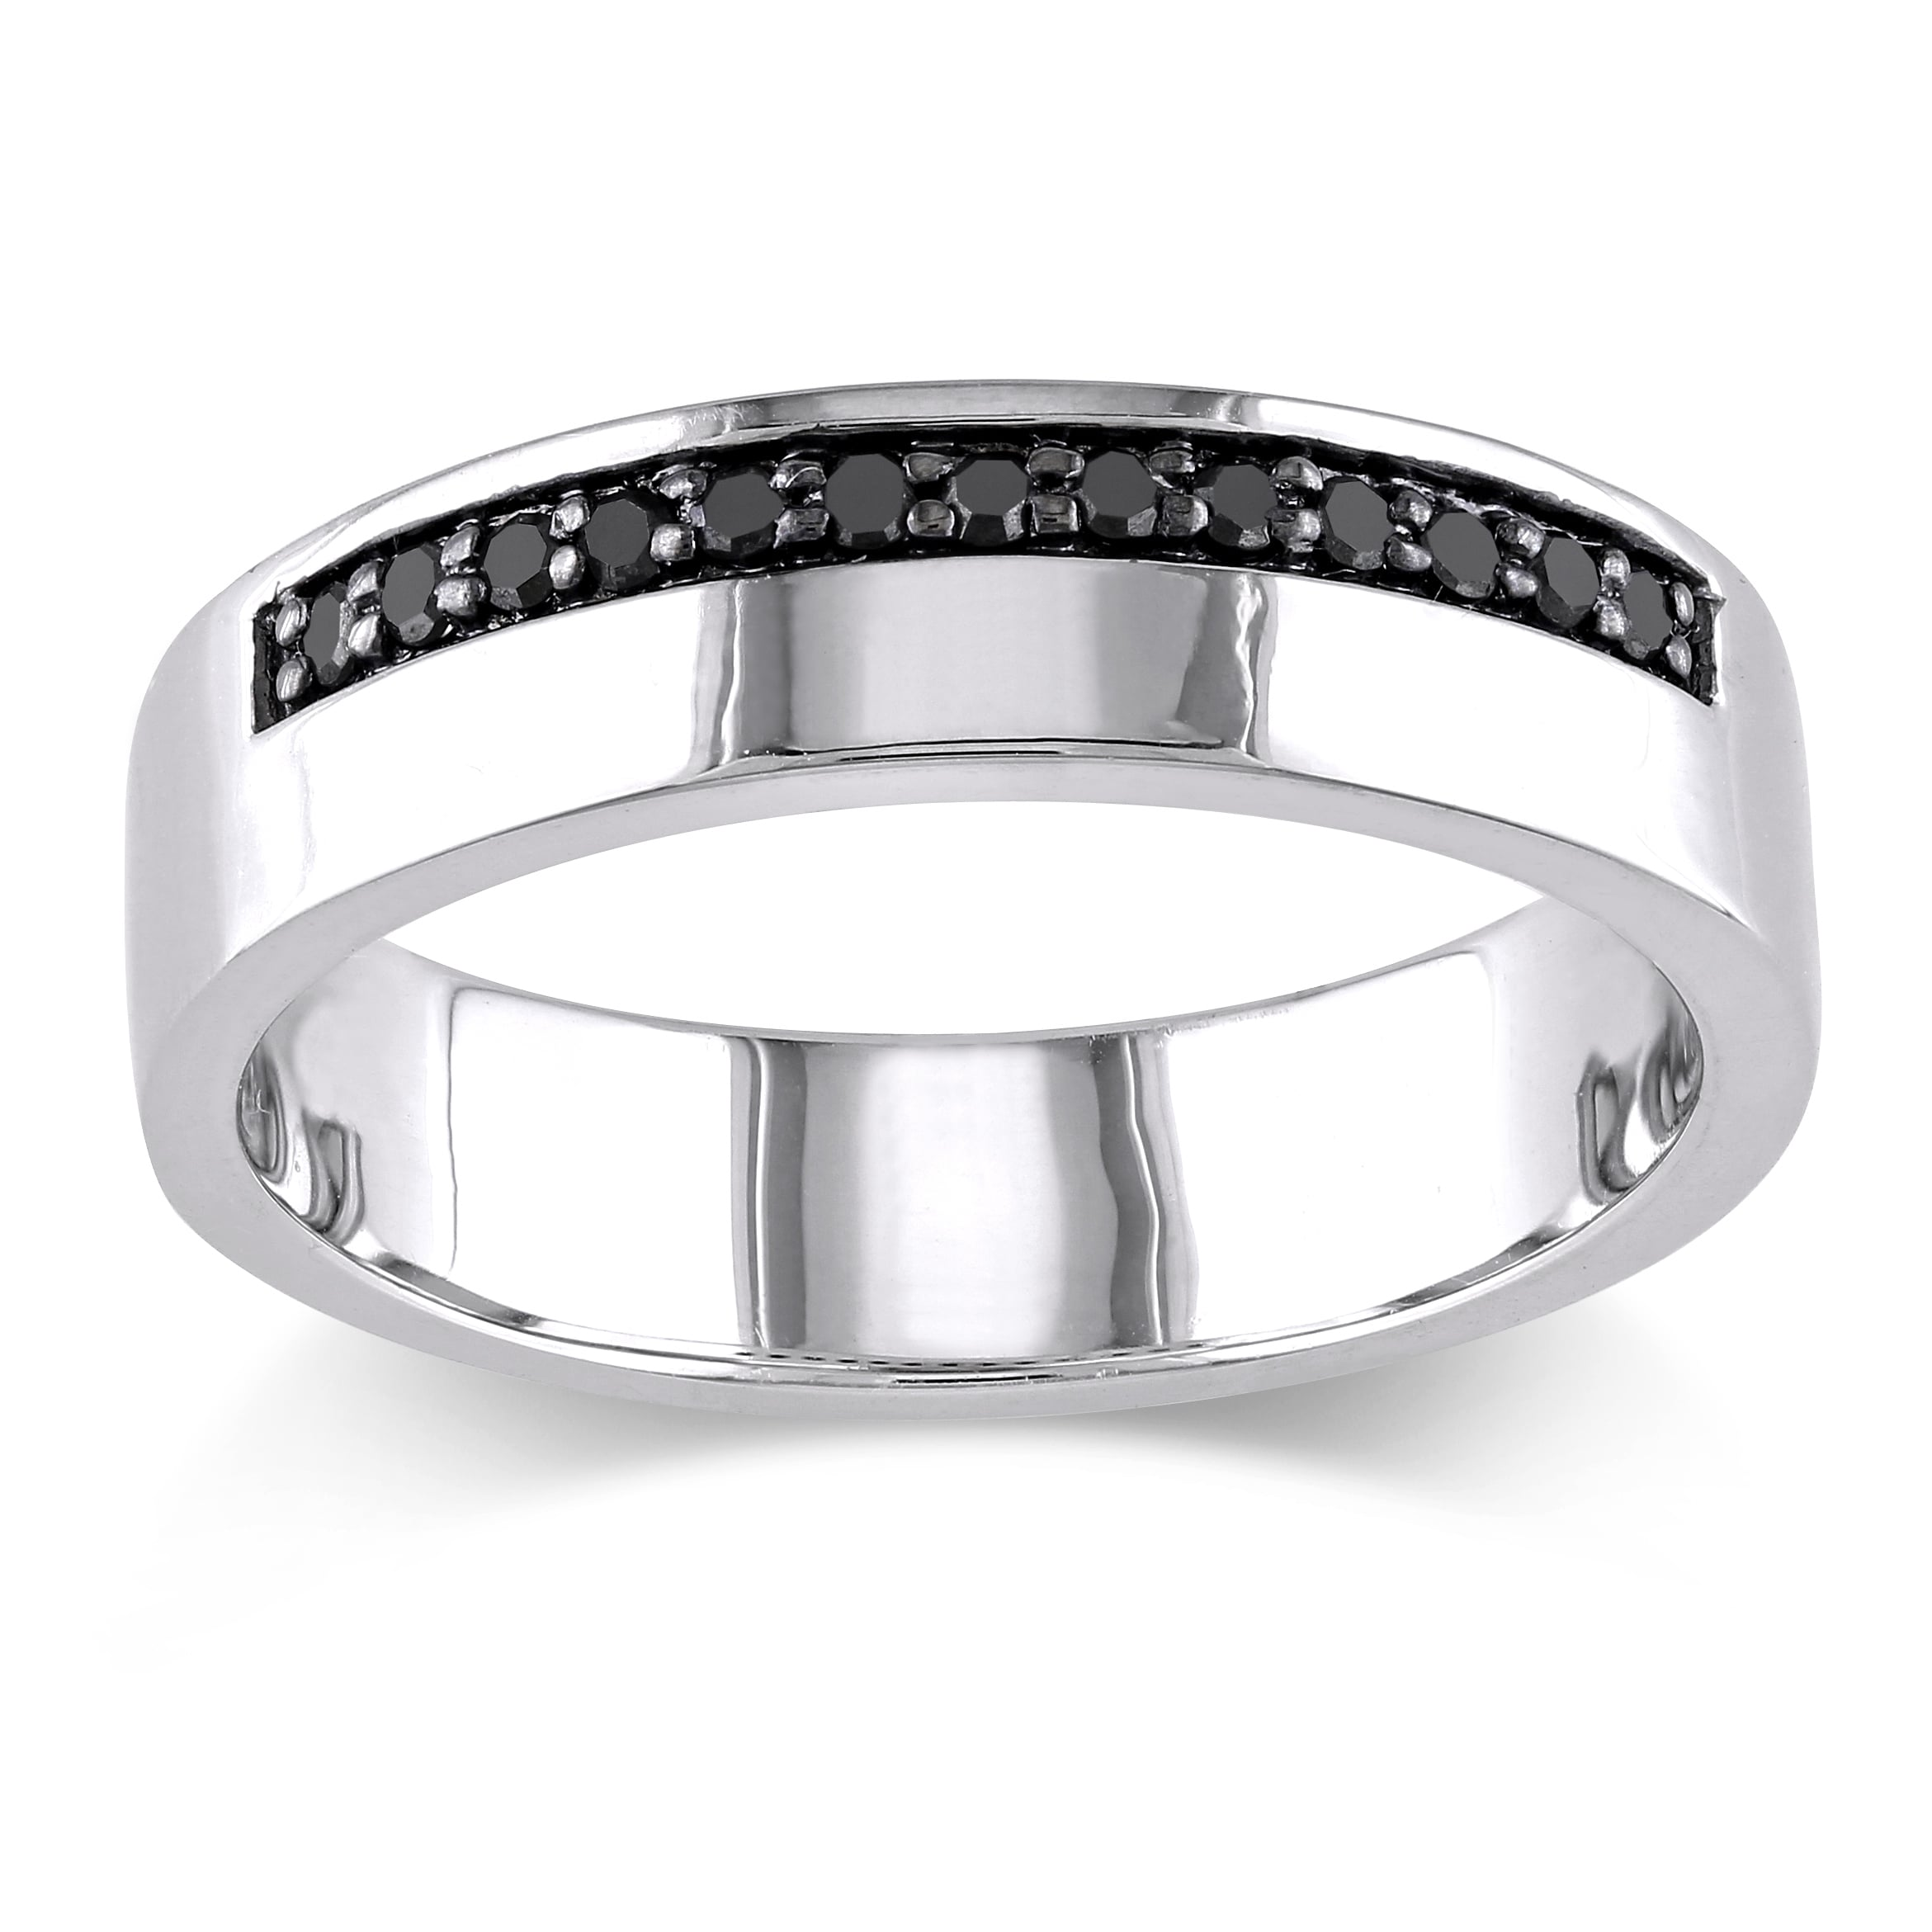 mens band ring products diamond bands black silver wedding carpe diem